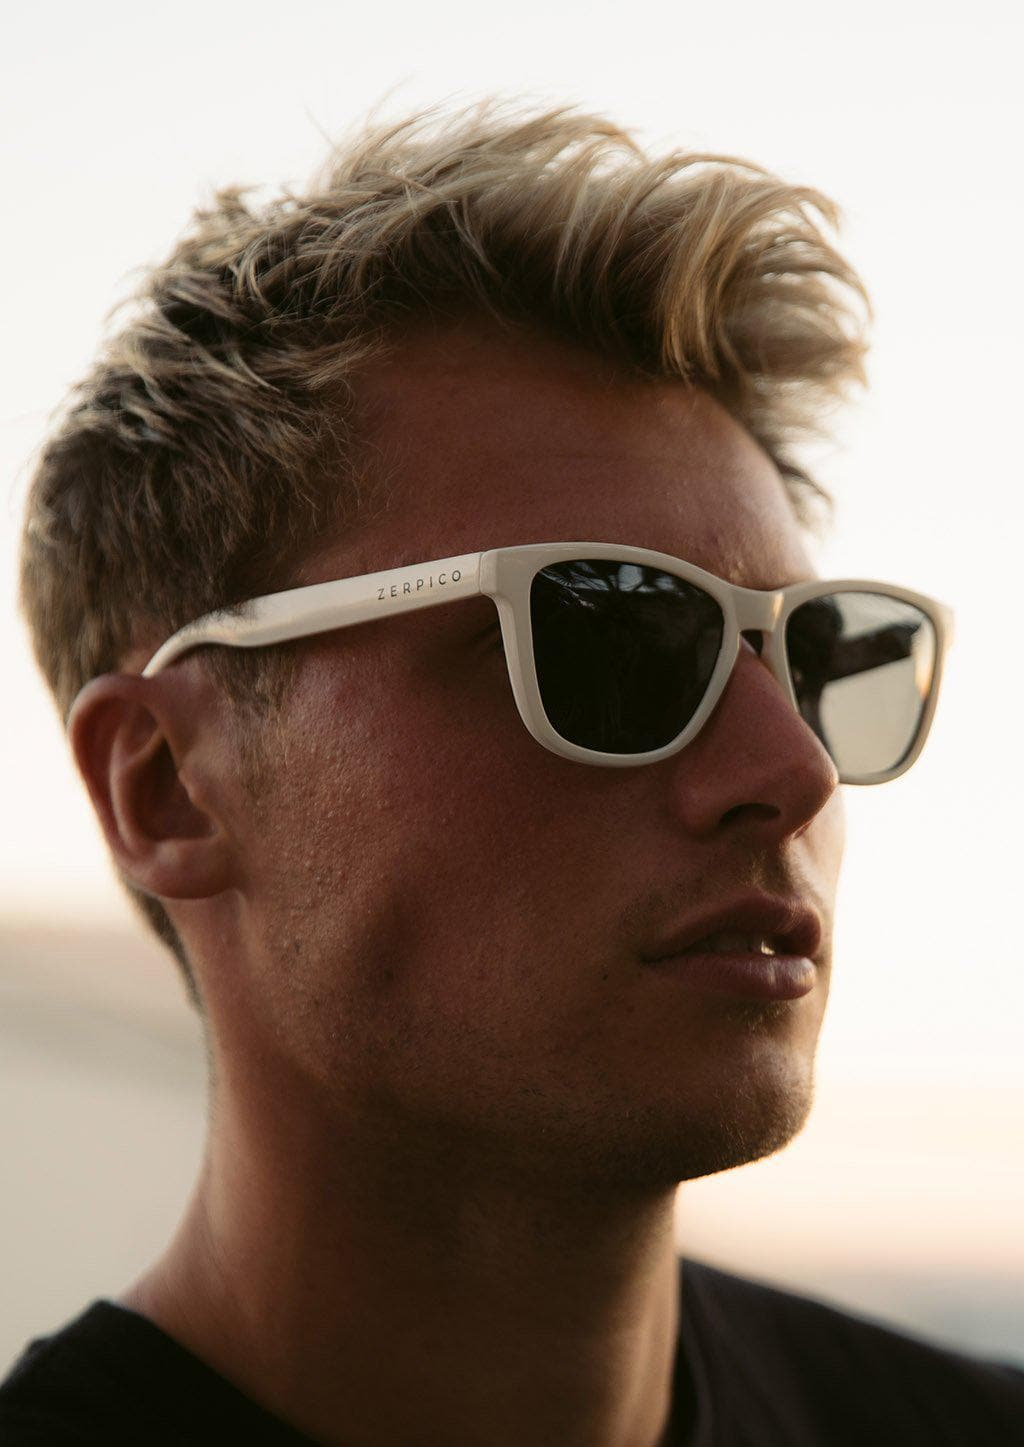 Our Mood V2 is an improved version of our last wayfarers. Plastic body for great quality and durabilty. This is Ace with white frame and black lenses. Lifestyle photo on male model.